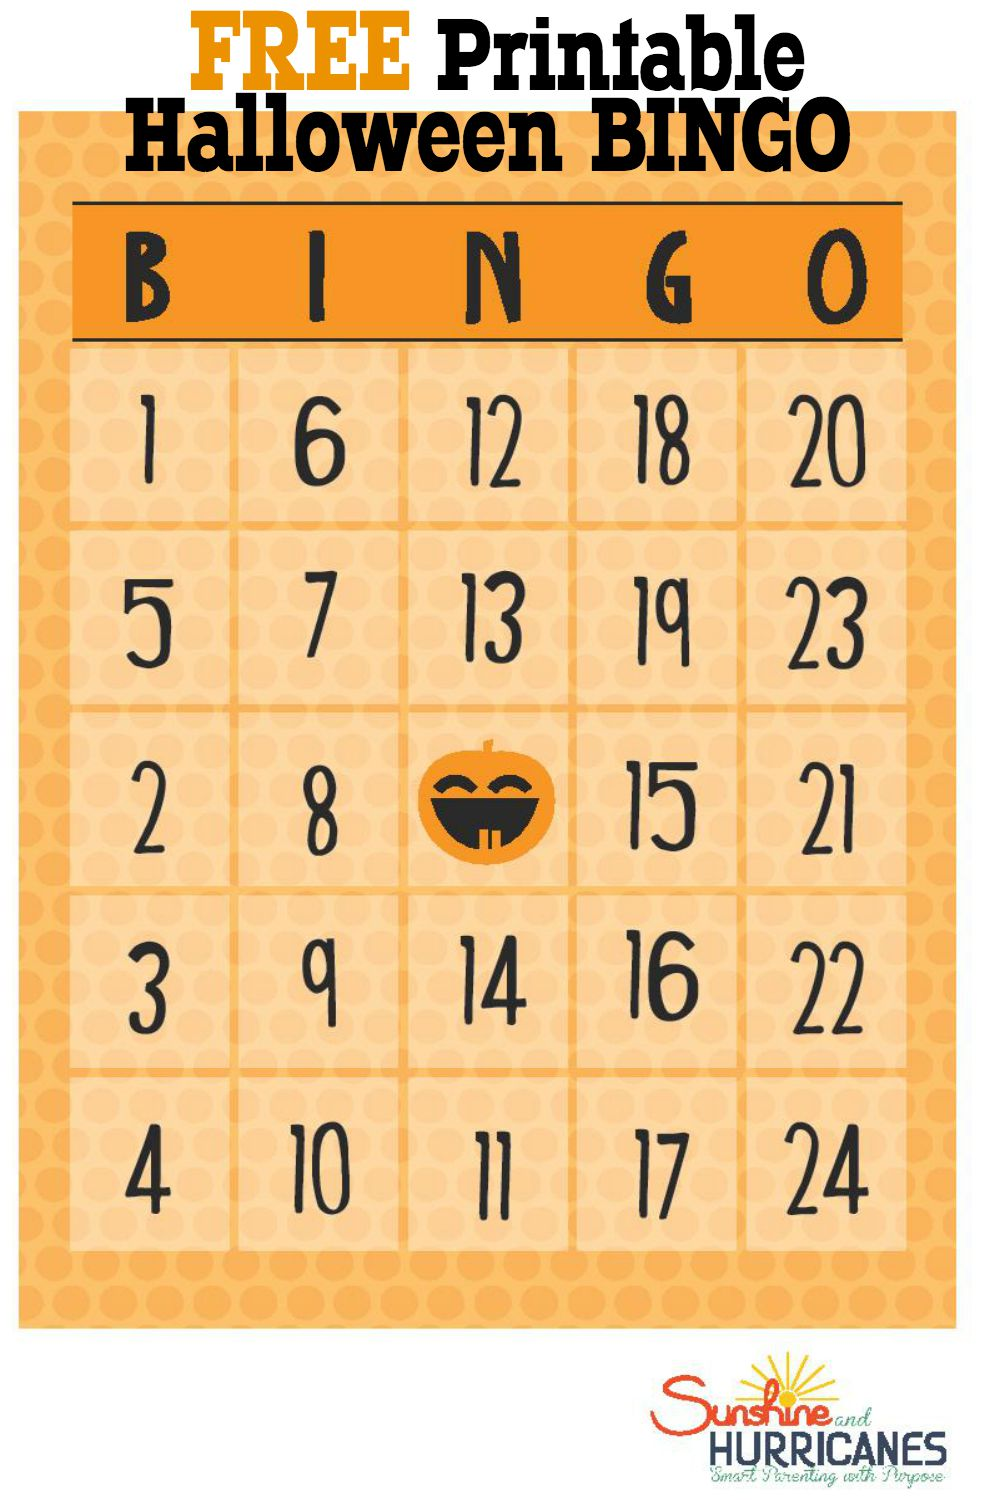 Looking for fun and free Halloween Printables to use at a Halloween party? Great for school or at home, this Halloween Printable Bingo game is perfect for holiday themed fun. Use candy corn for the place markers and you're good to go! Free Halloween Printable BINGO. SunshineandHurricanes.com